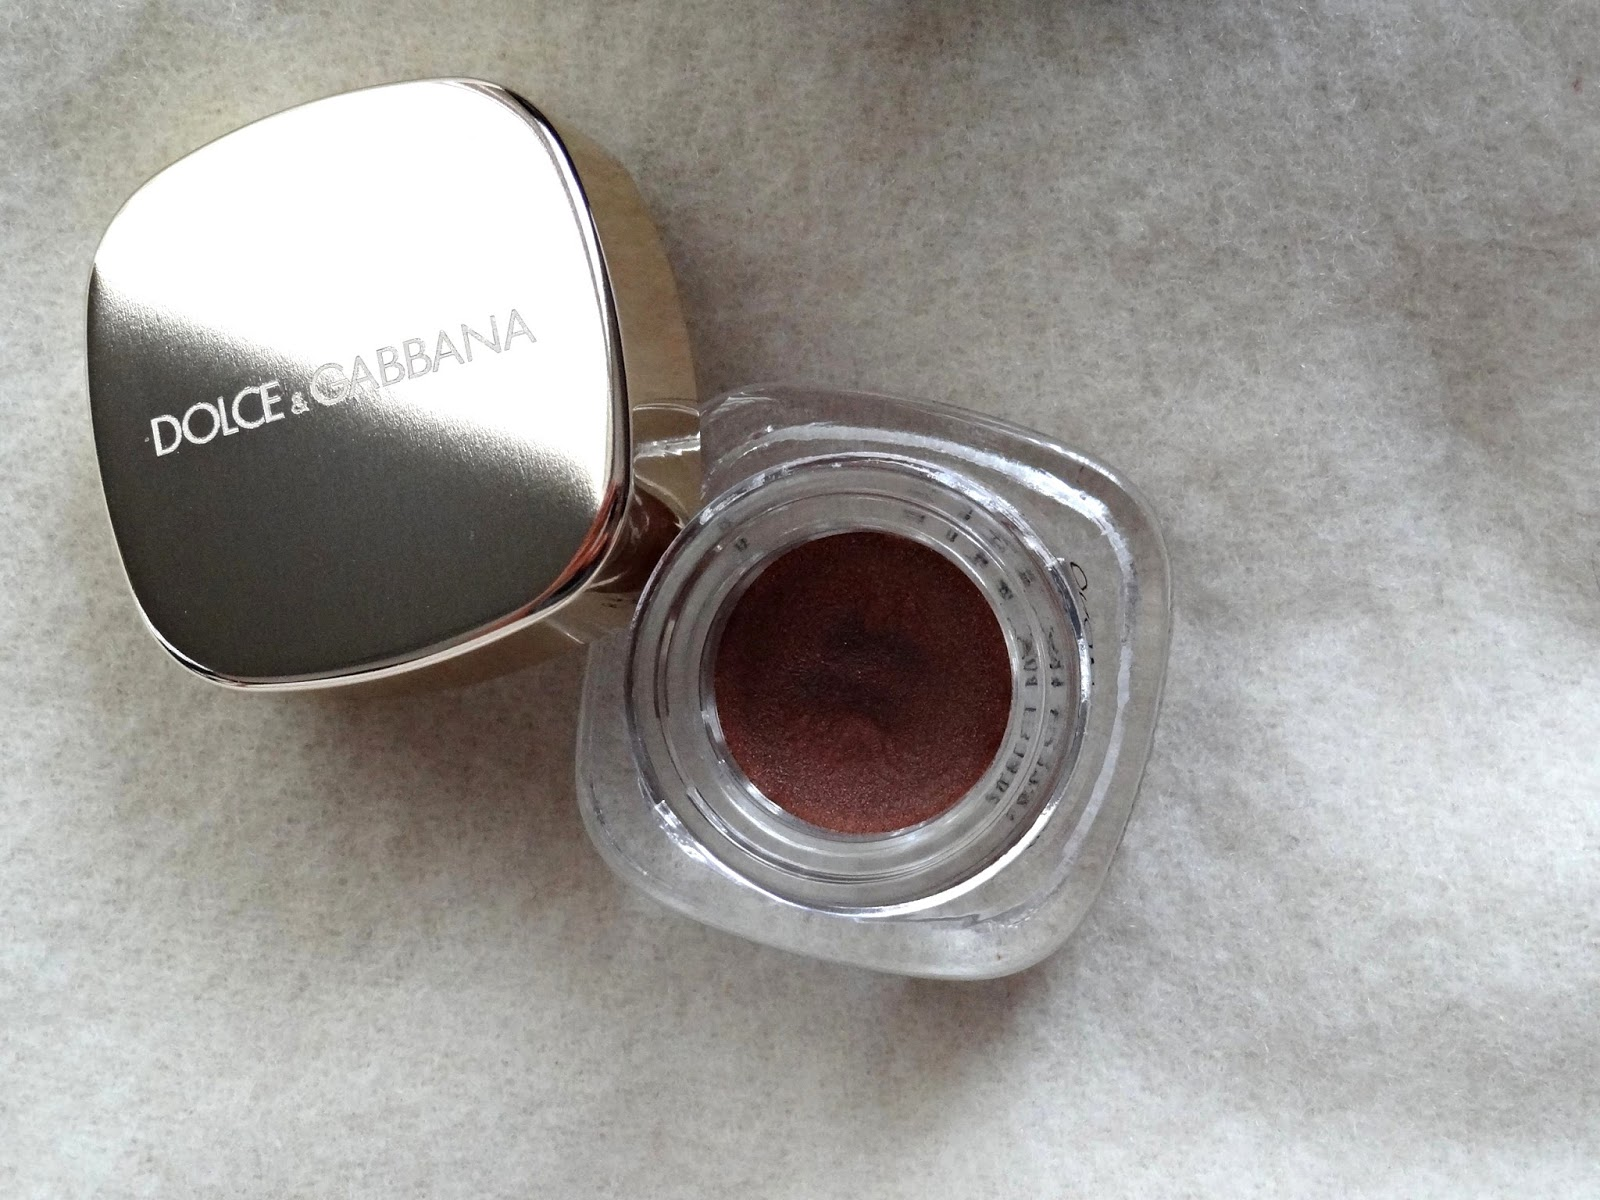 Dolce & Gabbana Perfect Mono Cream Eye Colour in Bronze